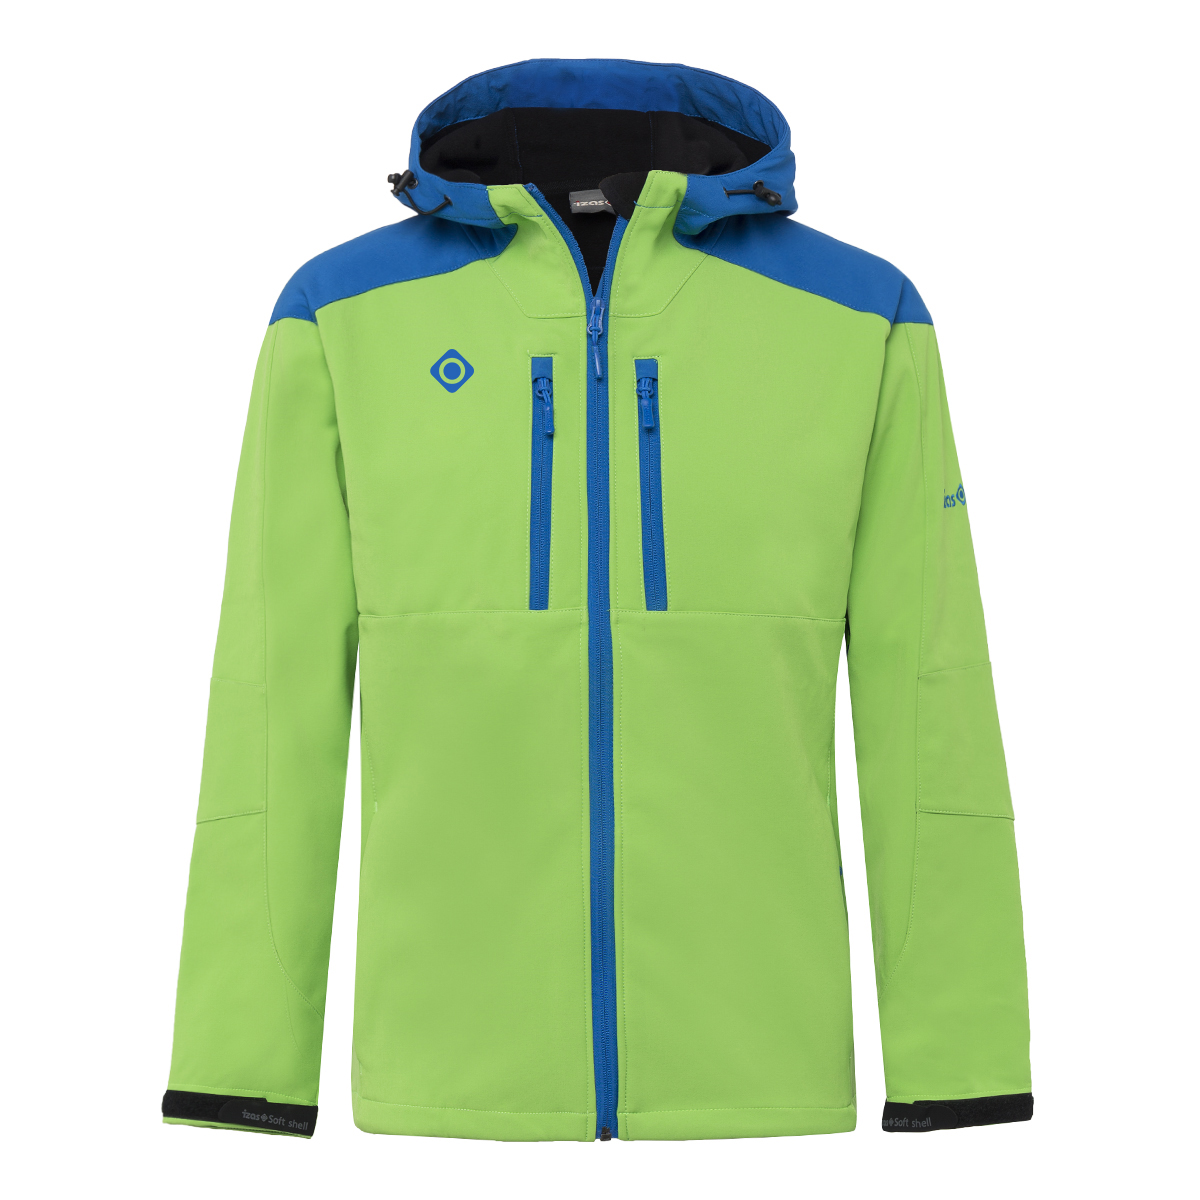 CASTOR-LIGHTGREEN-ROYAL-1